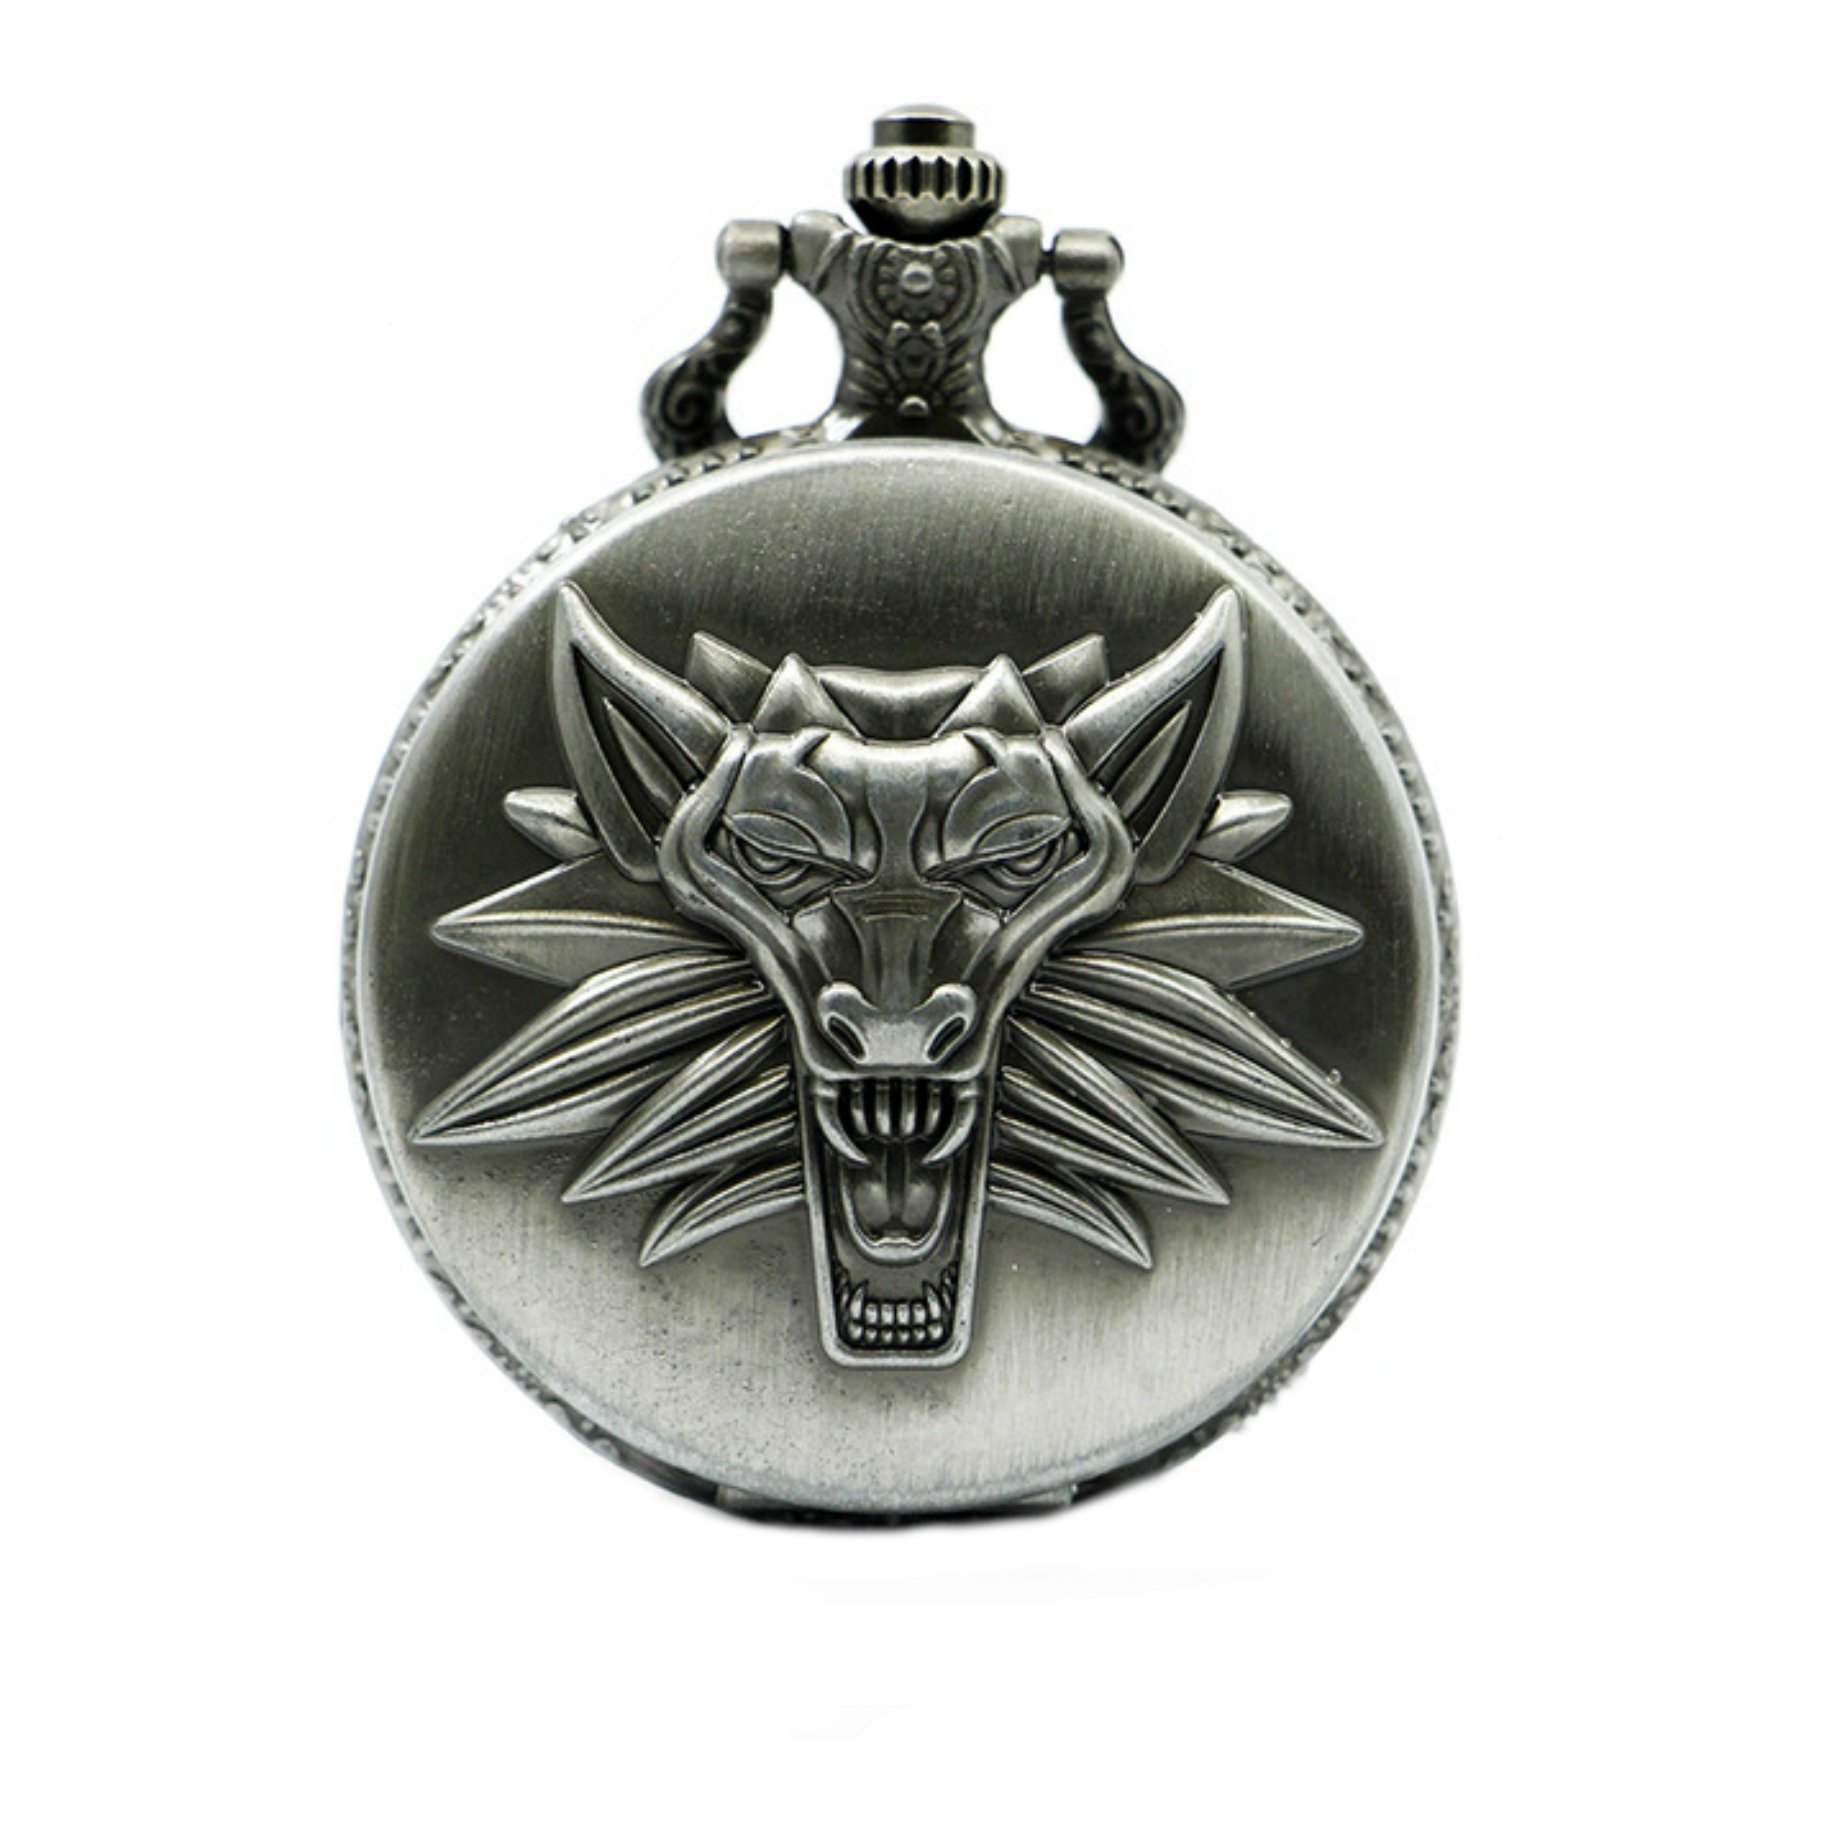 Witcher Wolf Necklace Pendant Watch Video Games Logo Cosplay by Athena Brands